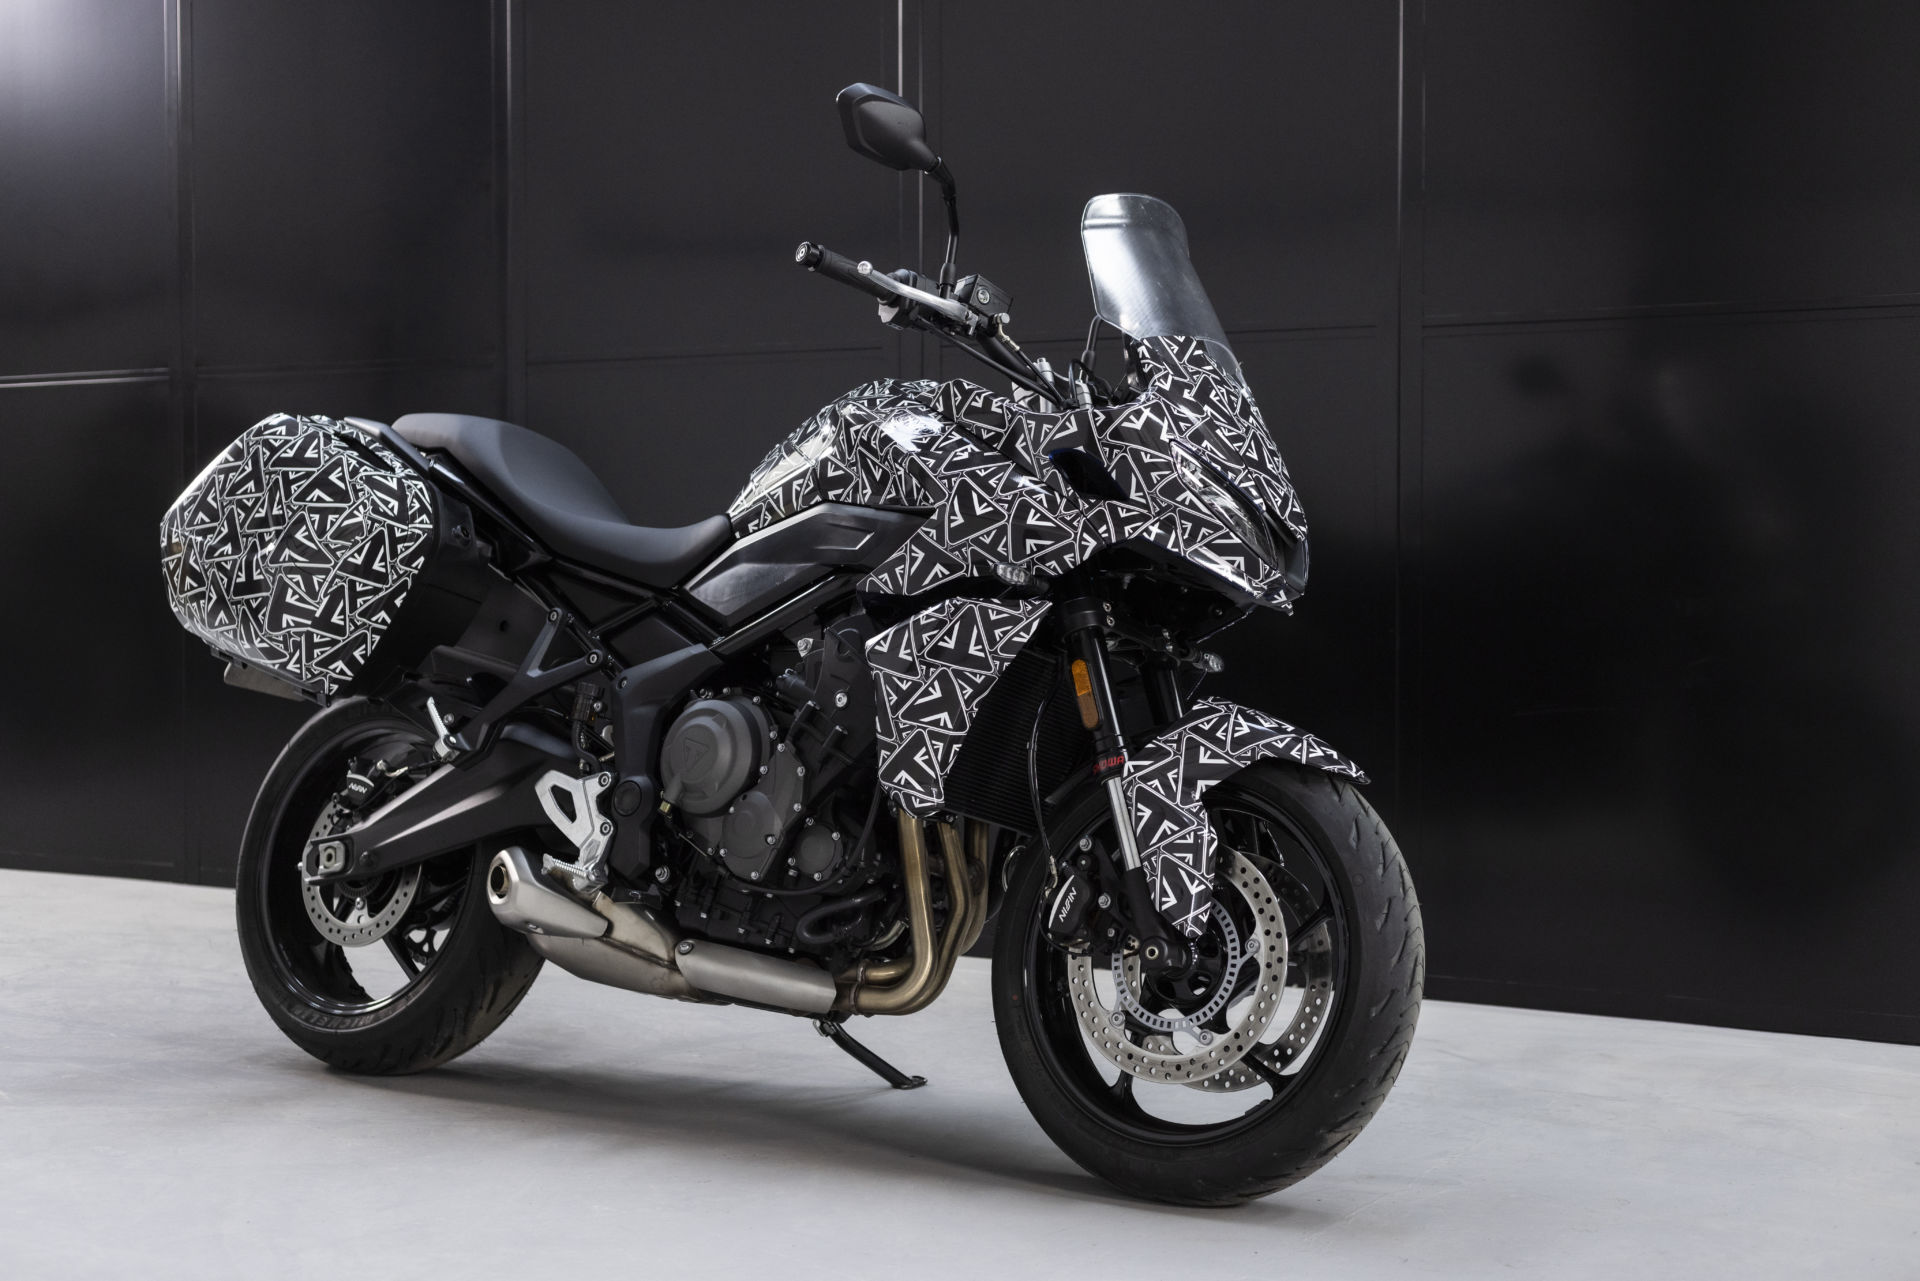 A Triumph Tiger Sport 660 prototype fitted with side cases. Photo courtesy Triumph.